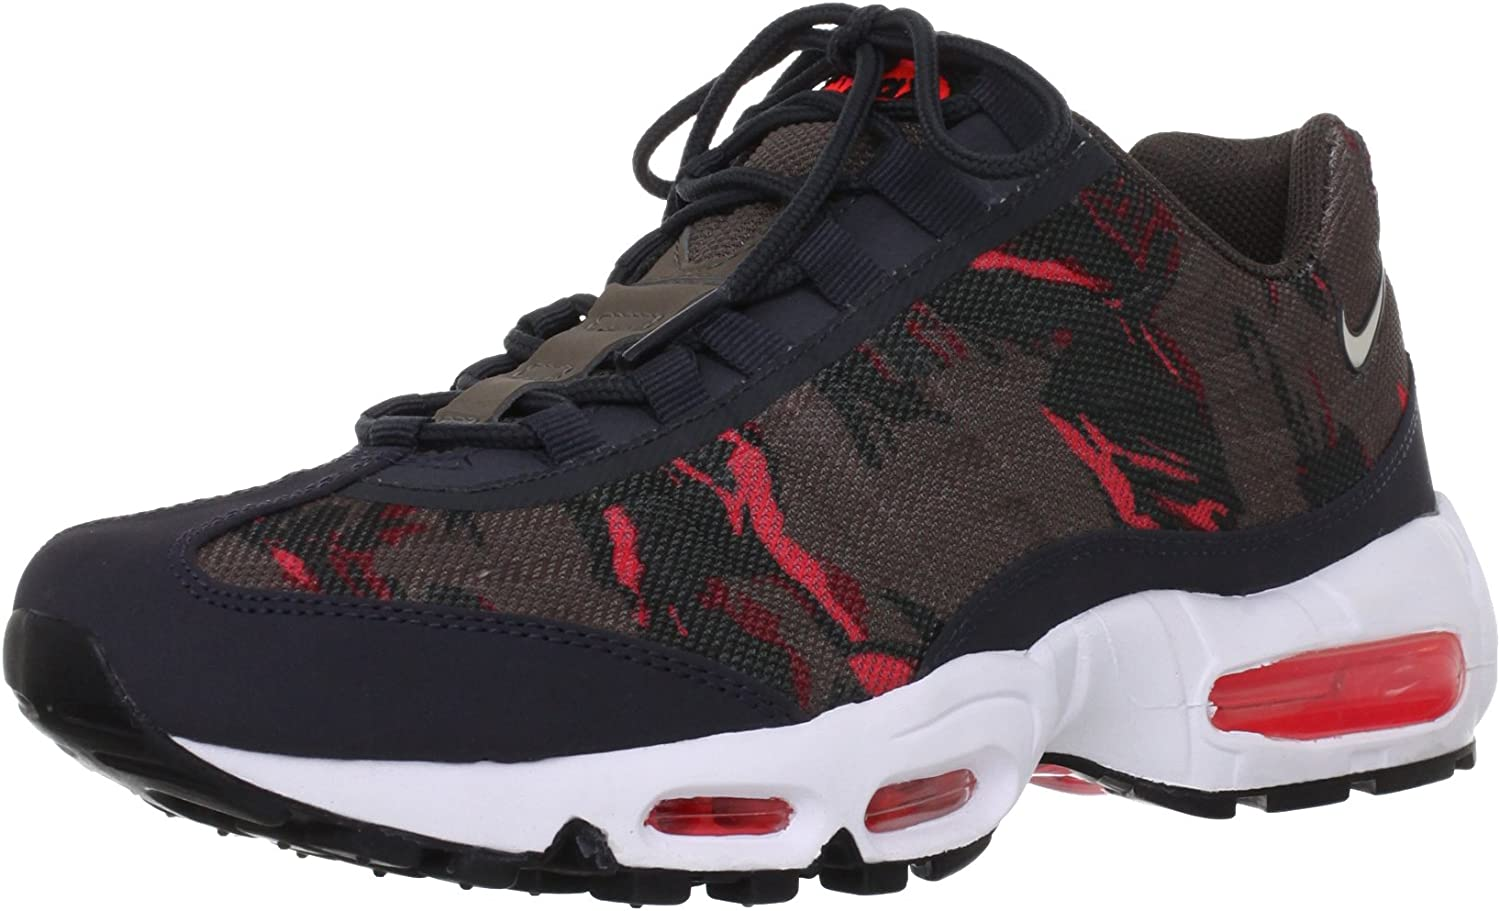 Nike Air Max 95 Premium Tape Brown -Red -Anthracite – Atomic Red